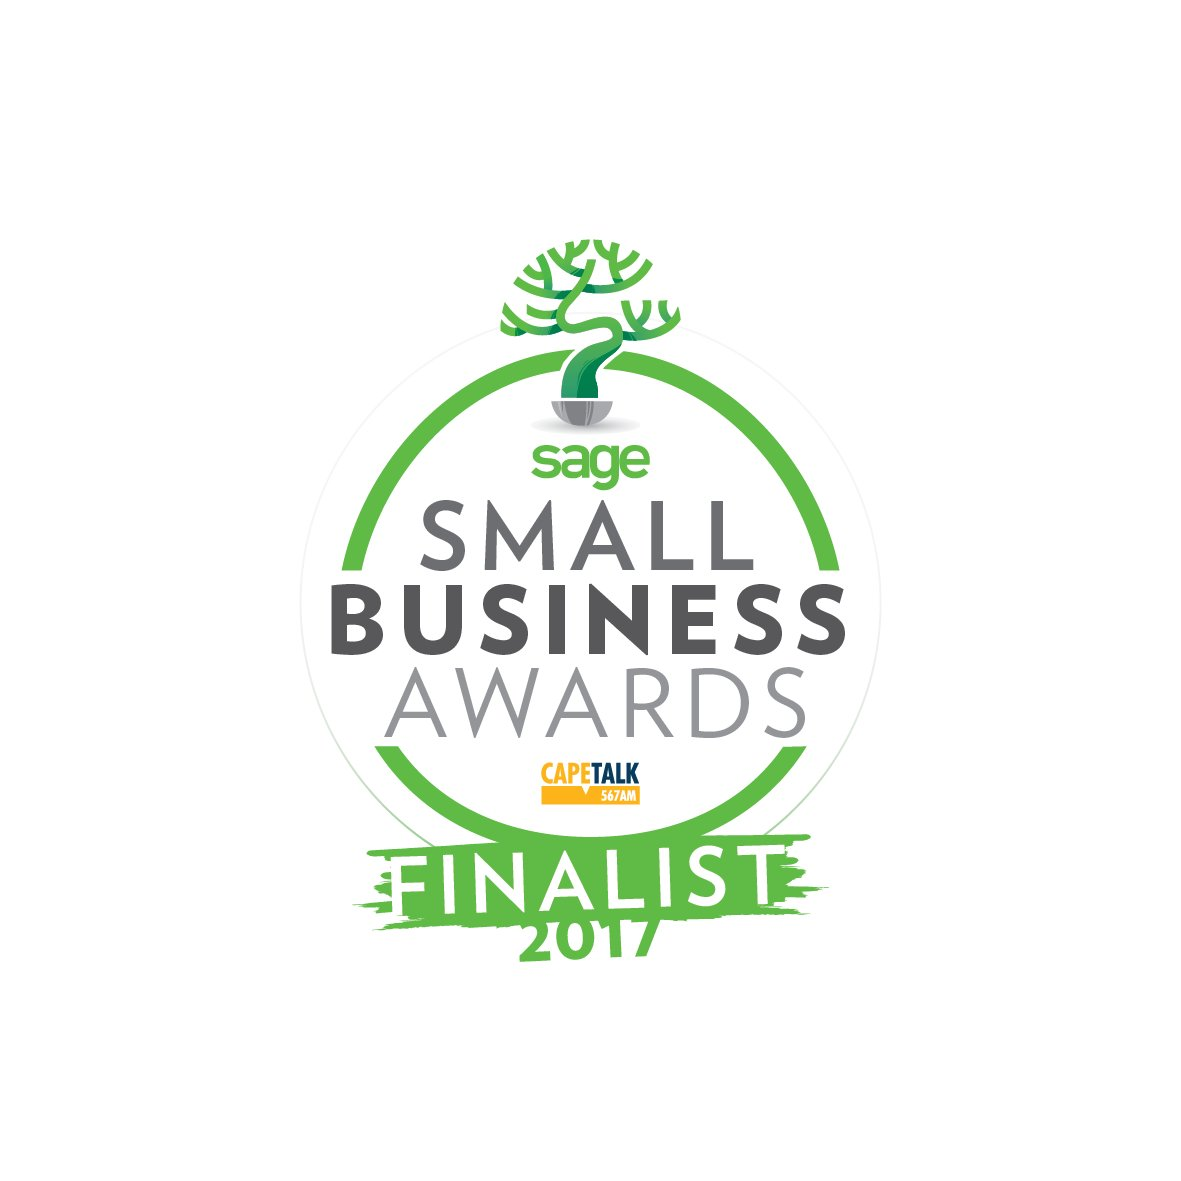 2017 Sage Small Business Awards